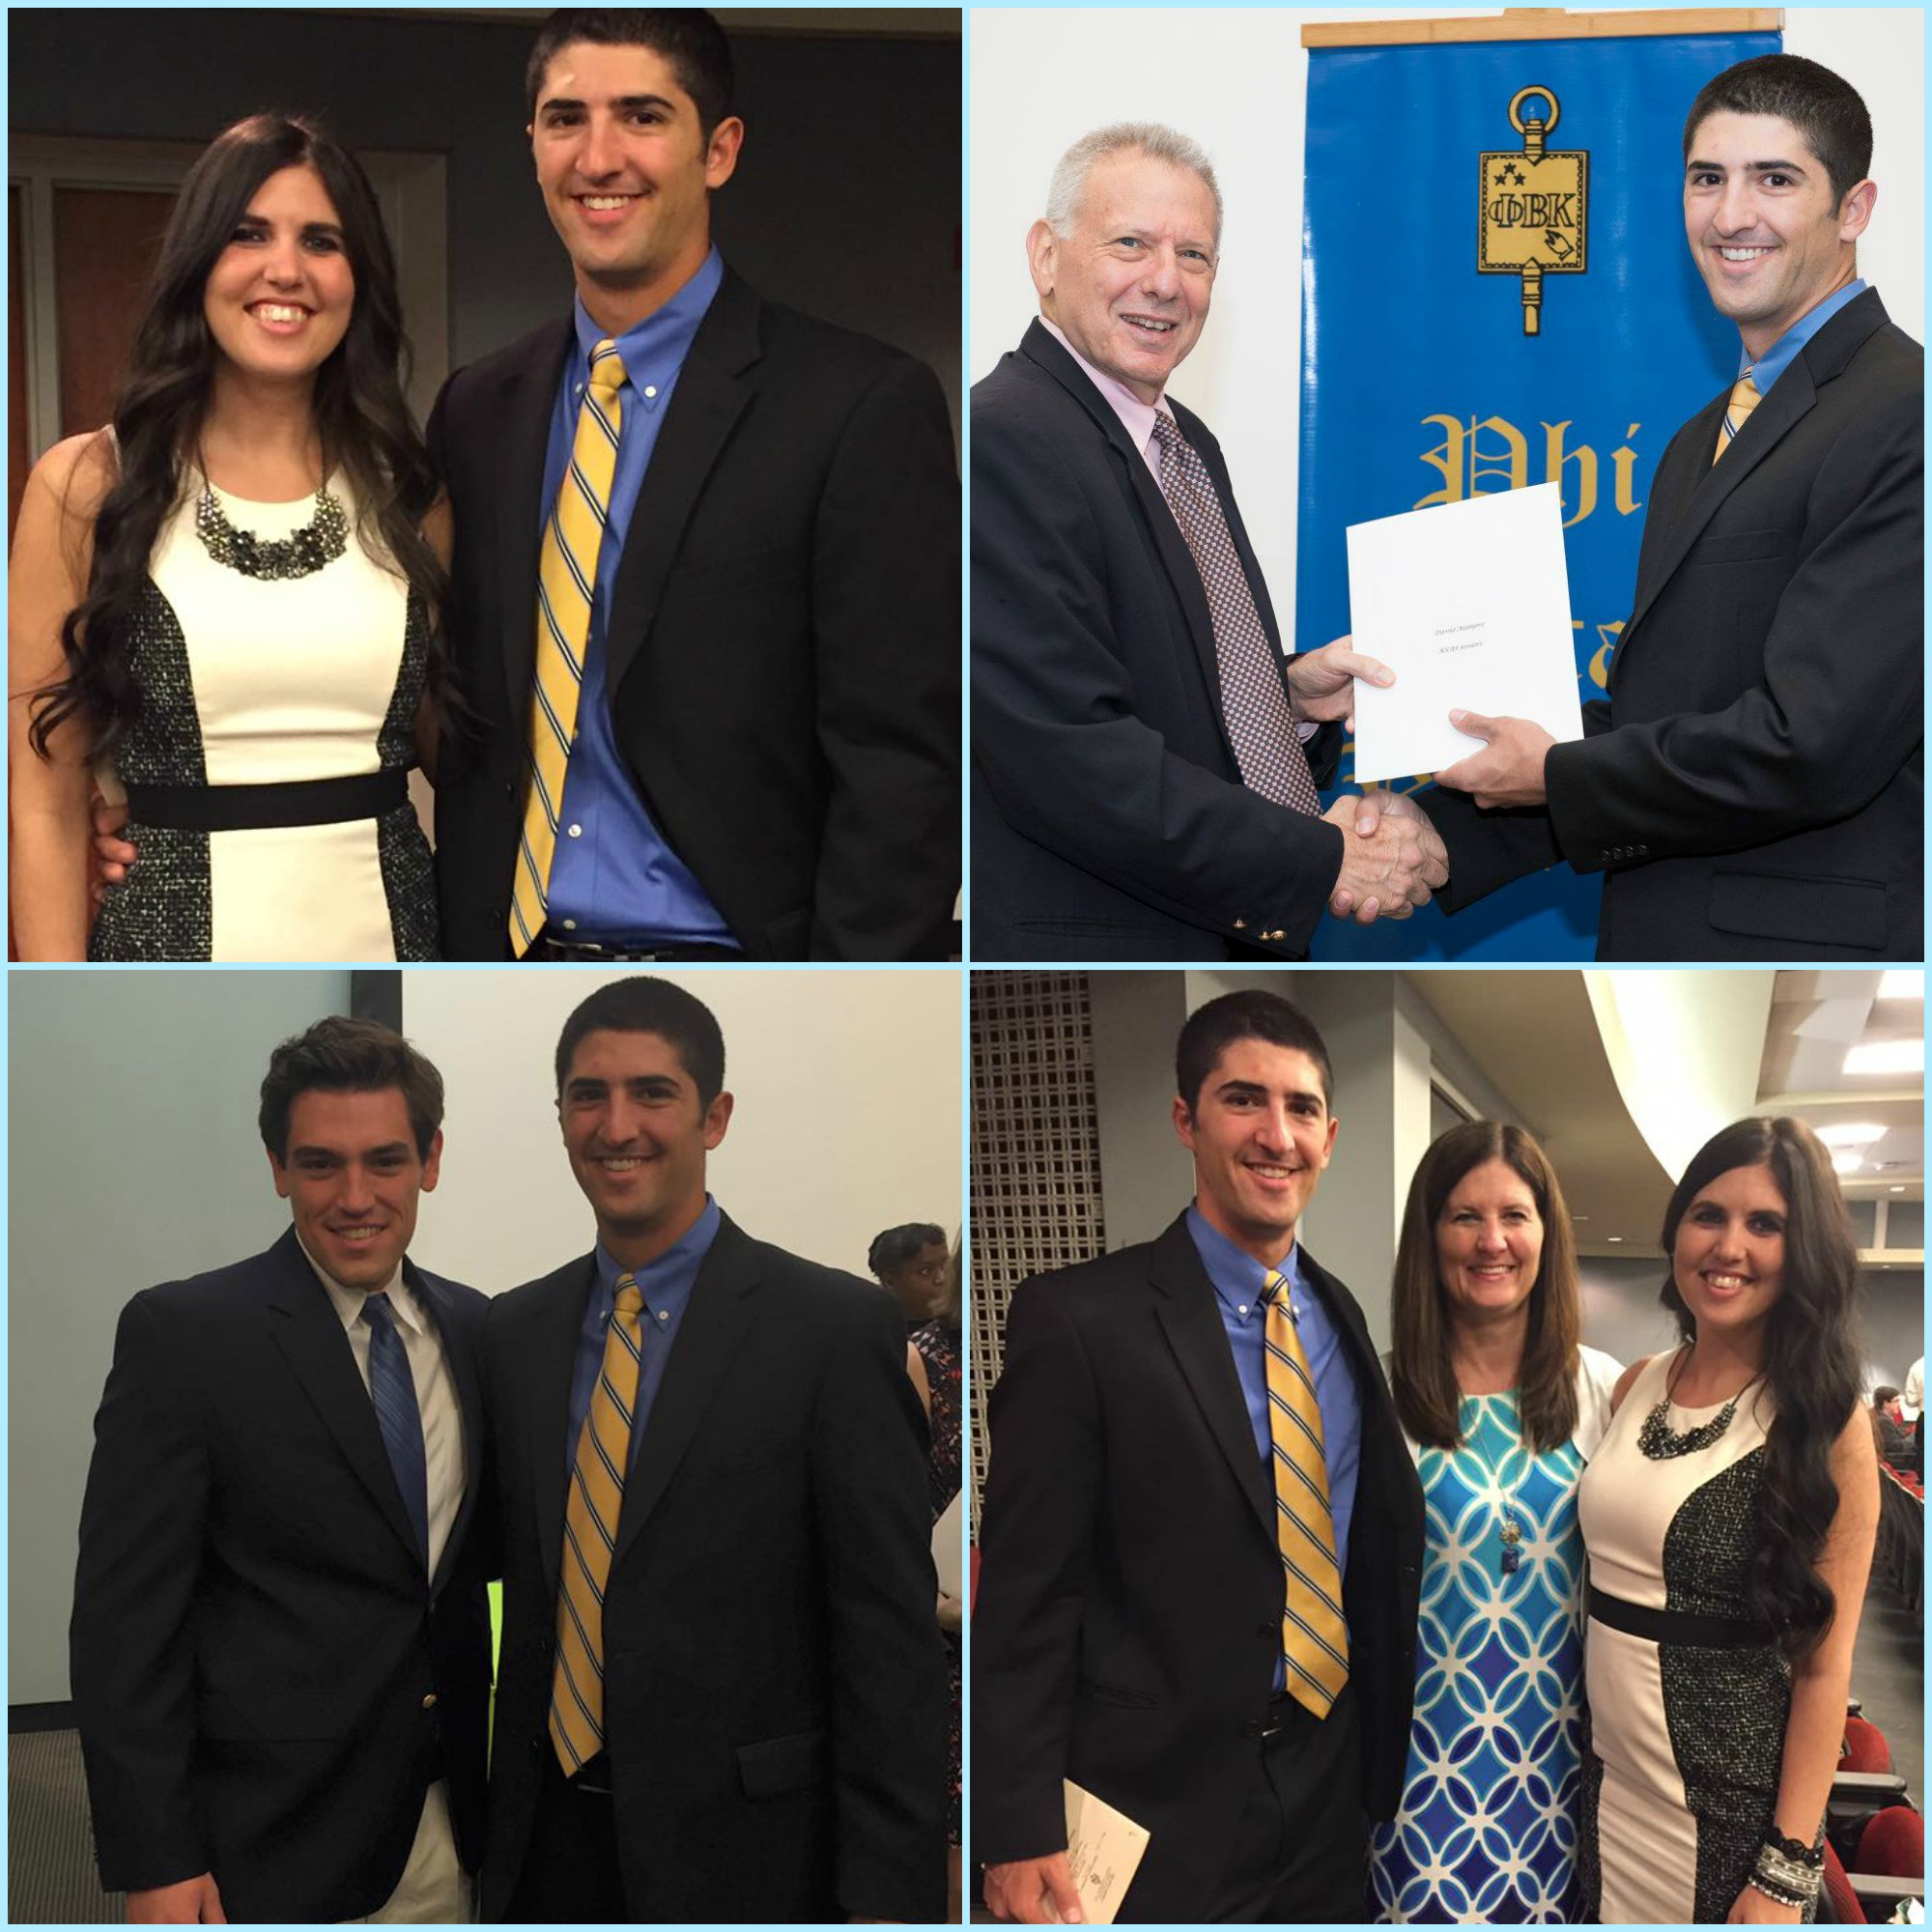 Phi Beta Kappa induction -From top left - David and I, David receiving his PBK certificate, David and his roommate Jack, David, mom and I